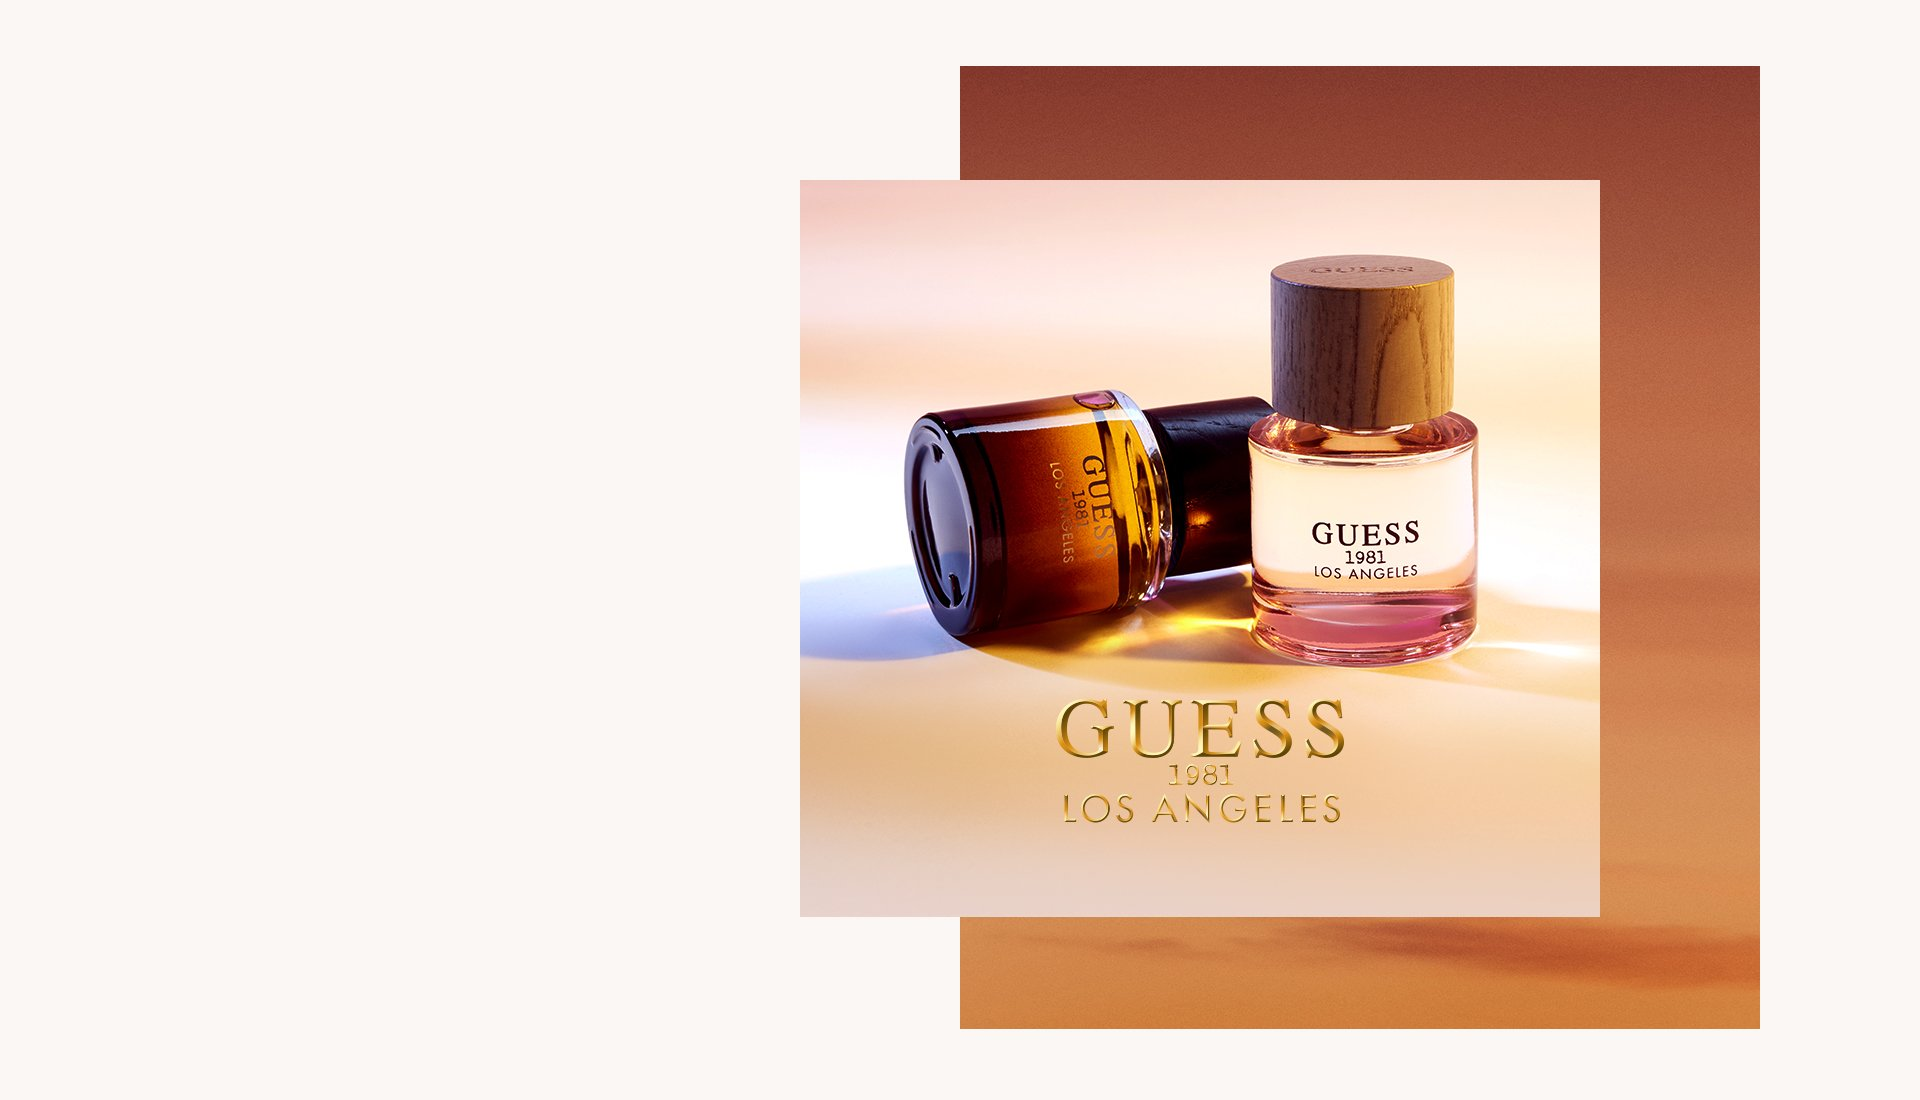 GUESS 1981 Los Angeles